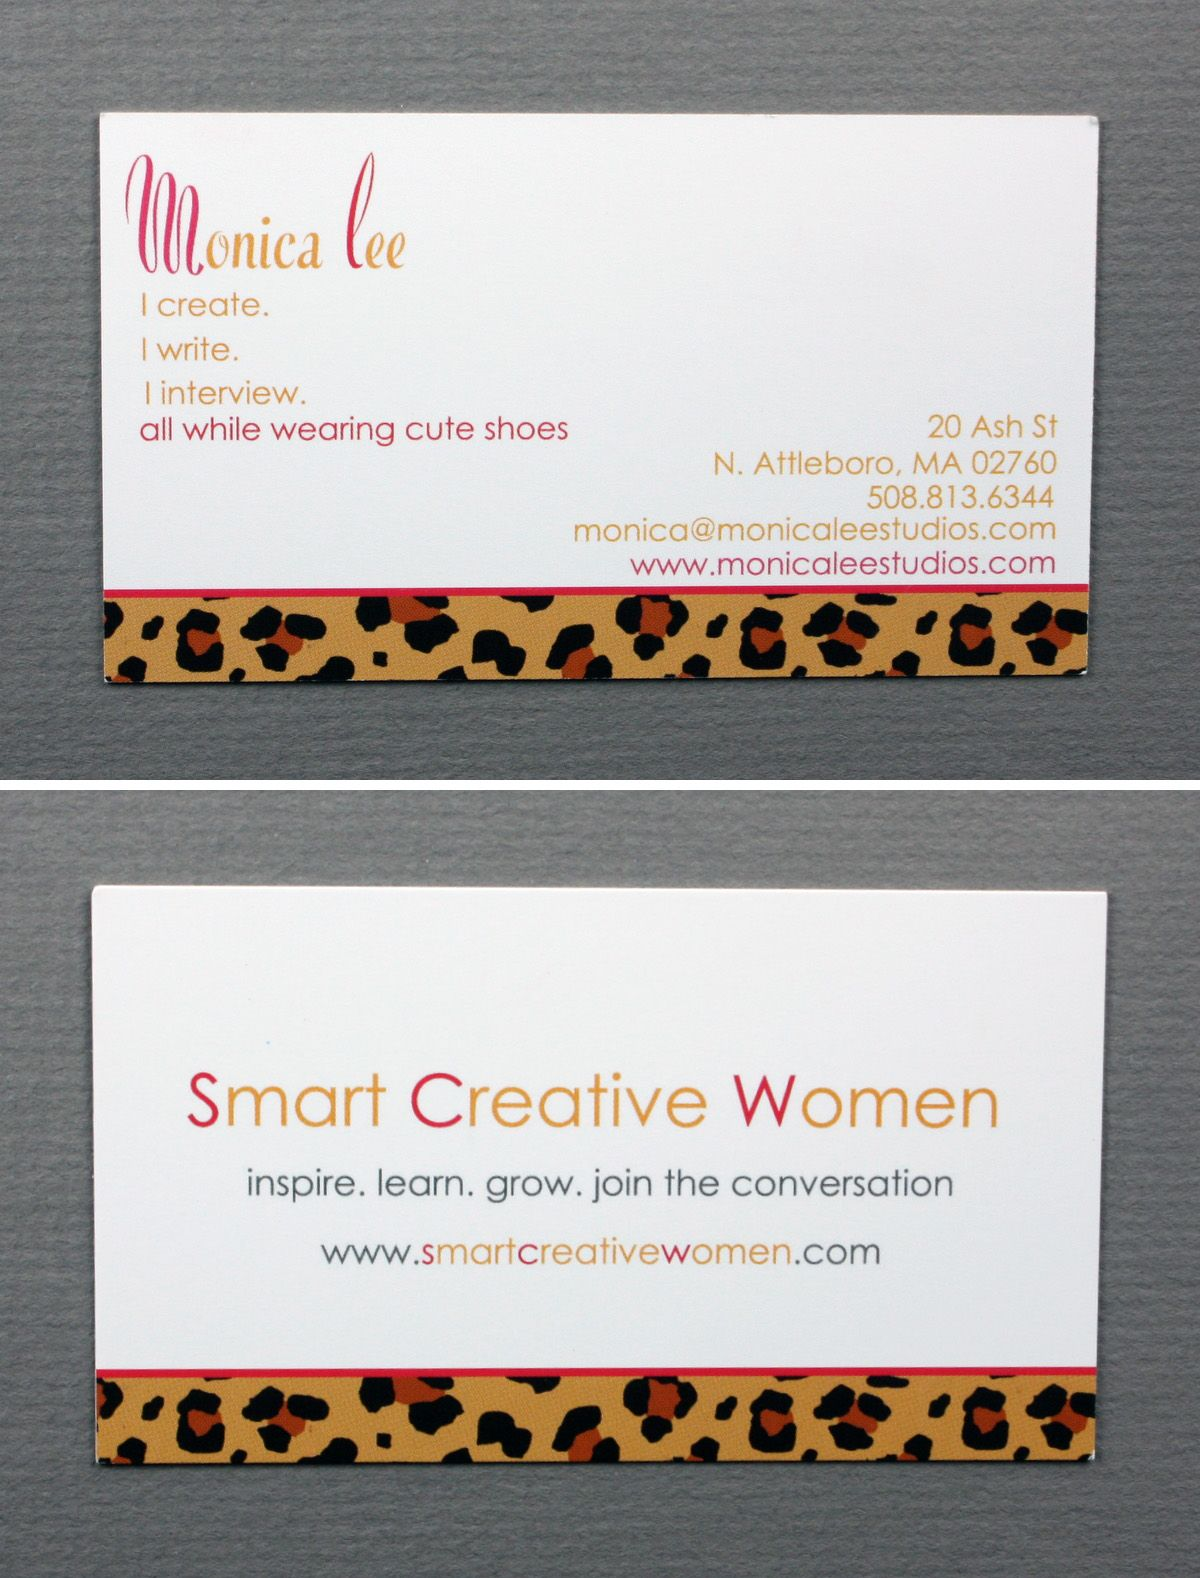 Smart creative women monica lee smartcreativewomen smart creative women monica lee smartcreativewomen somebody pinned my business card colourmoves Gallery